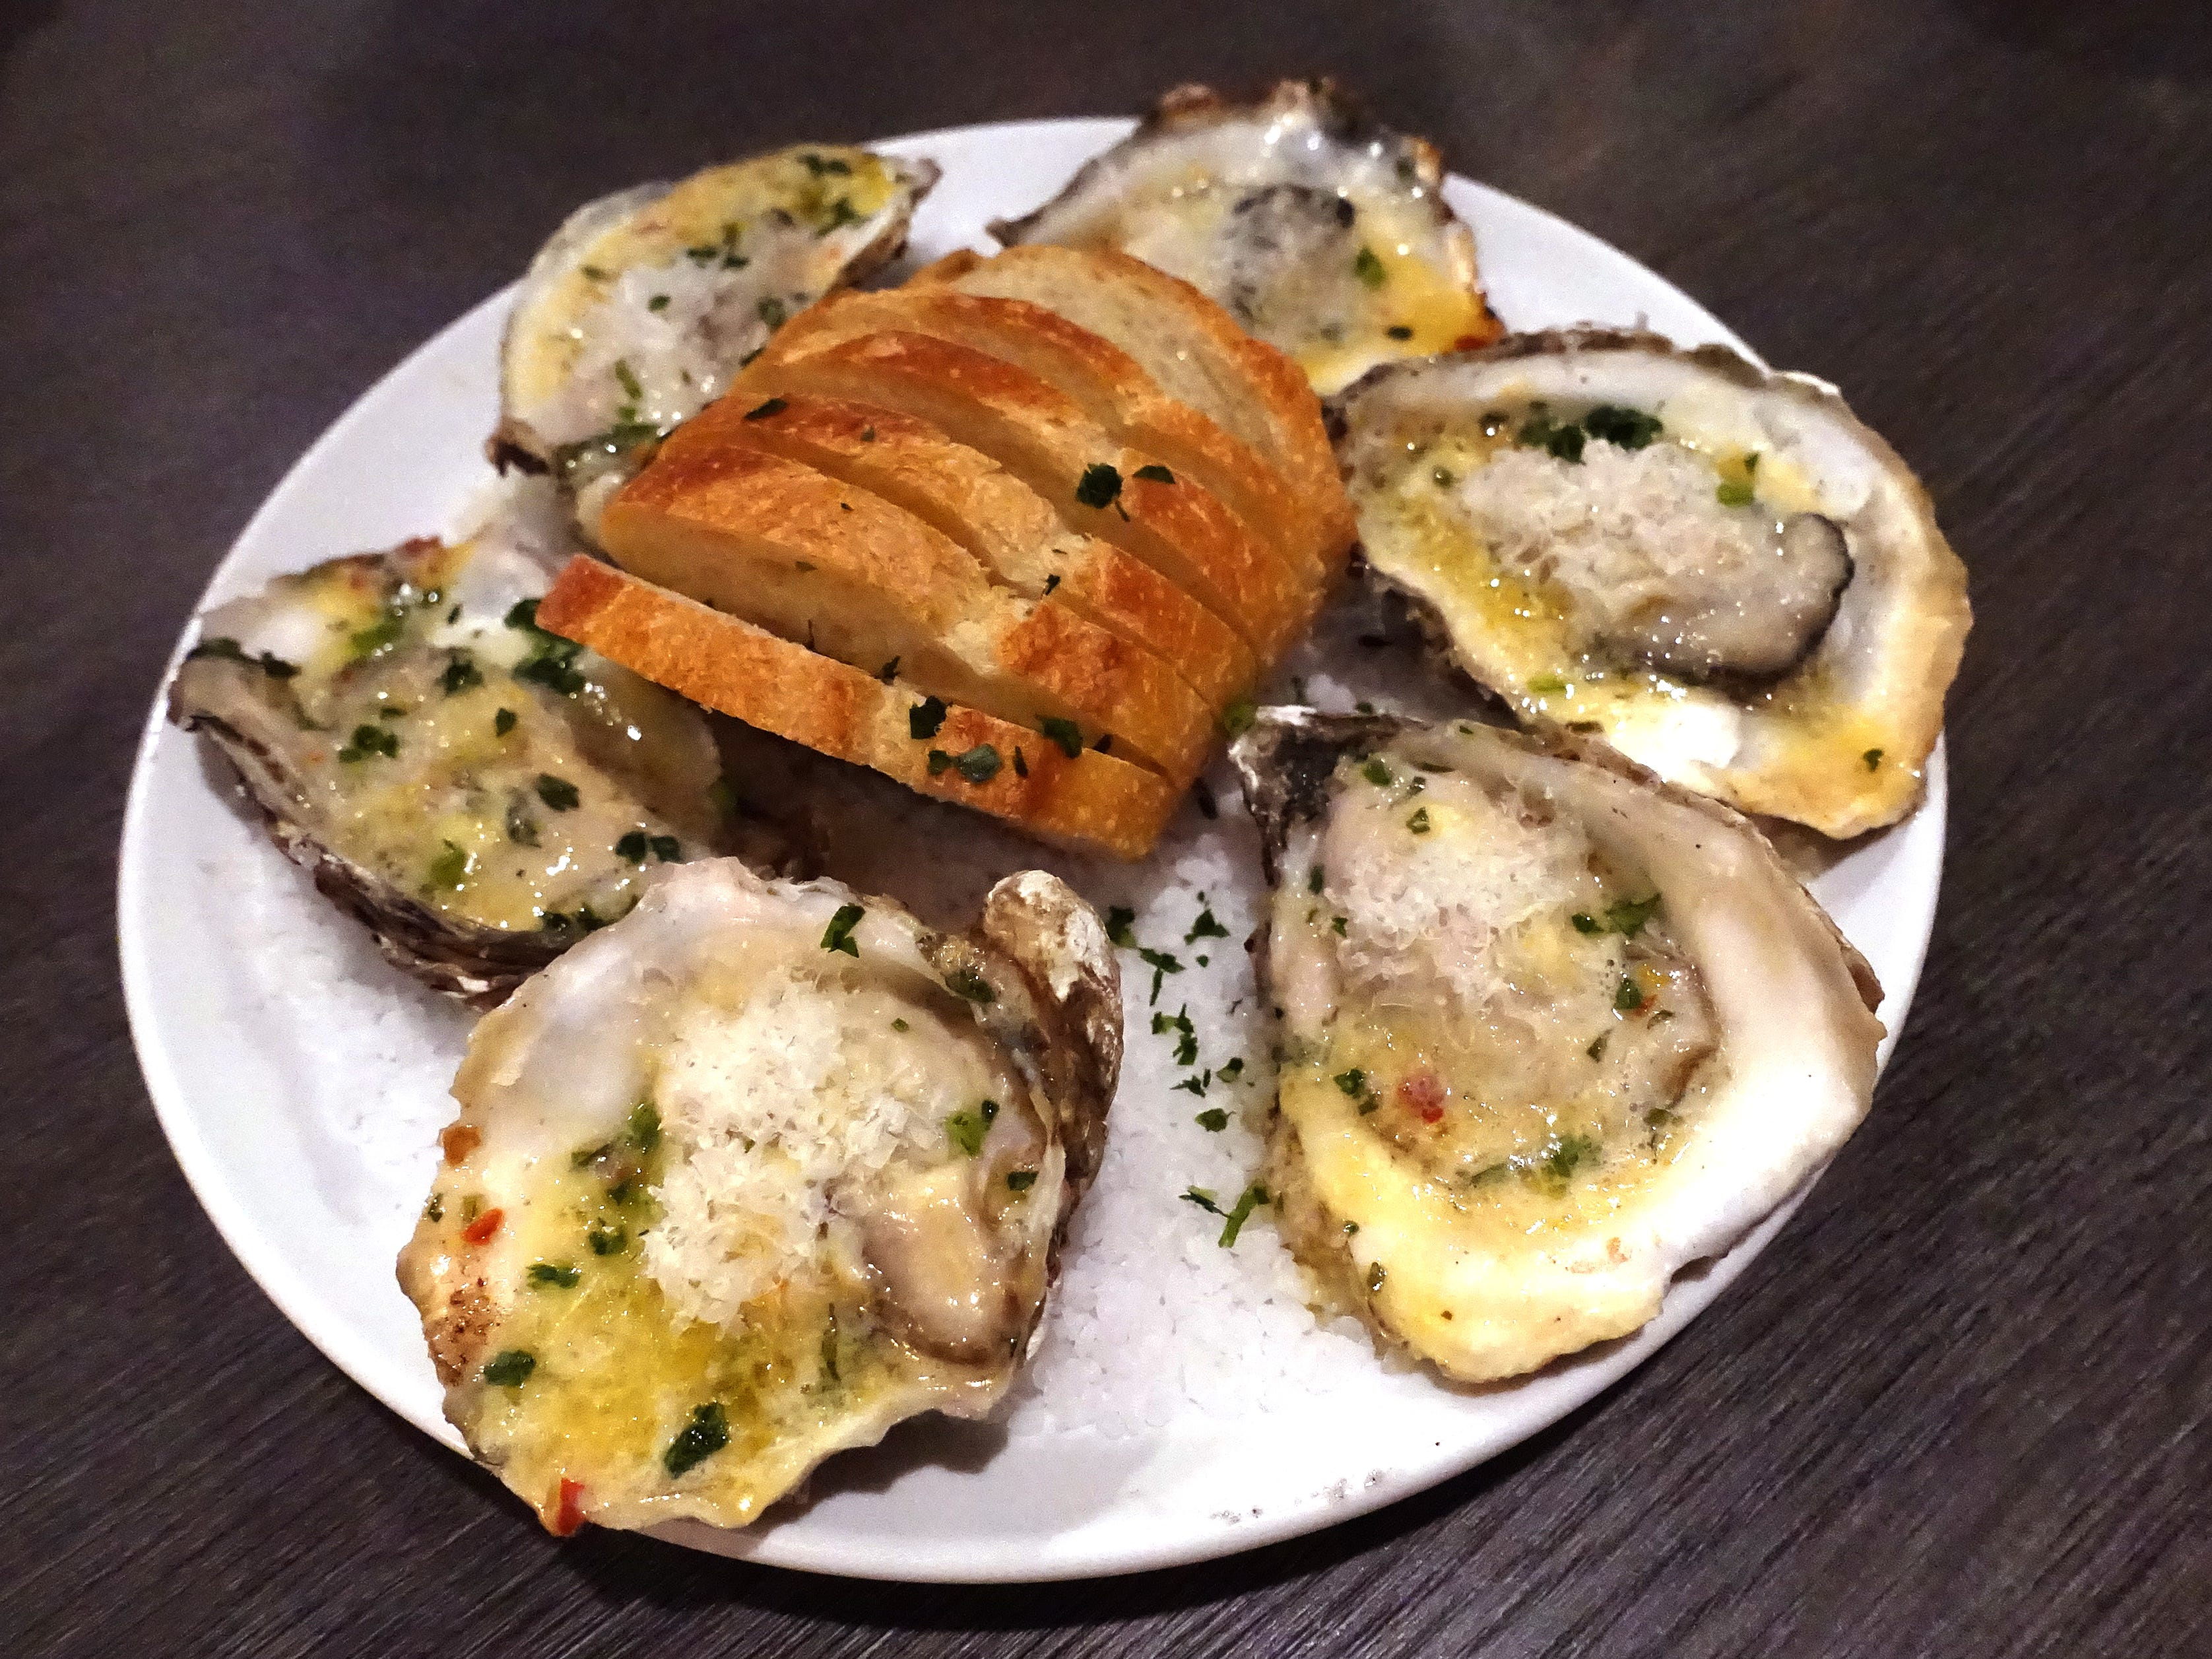 Grilled Blue Point oysters with Cutino butter sauce and Grana Padano at Hush Public House in Scottsdale.